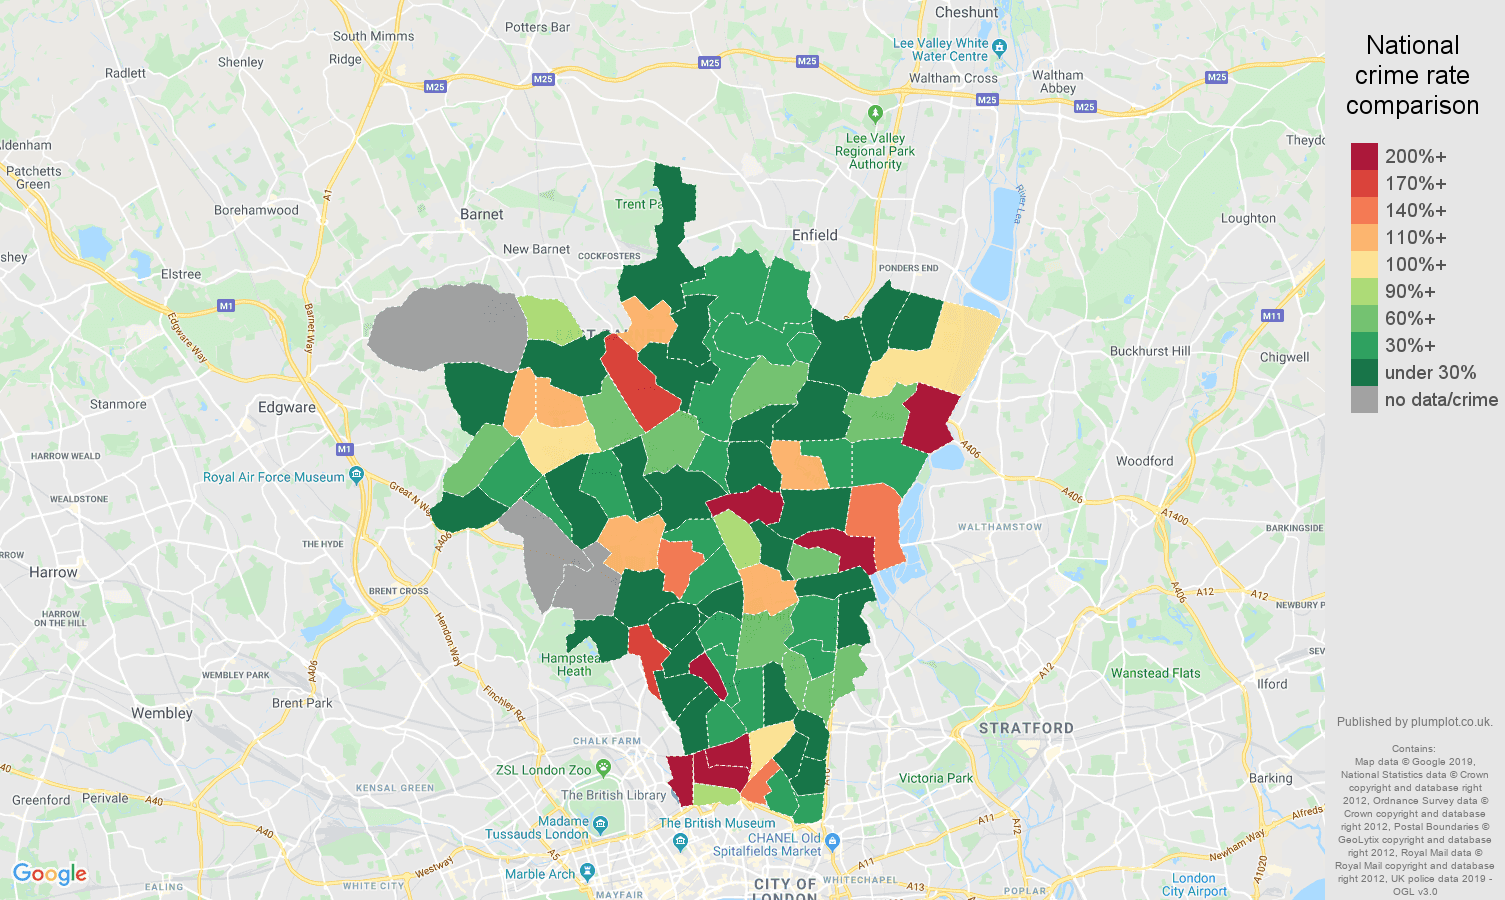 North London shoplifting crime rate comparison map